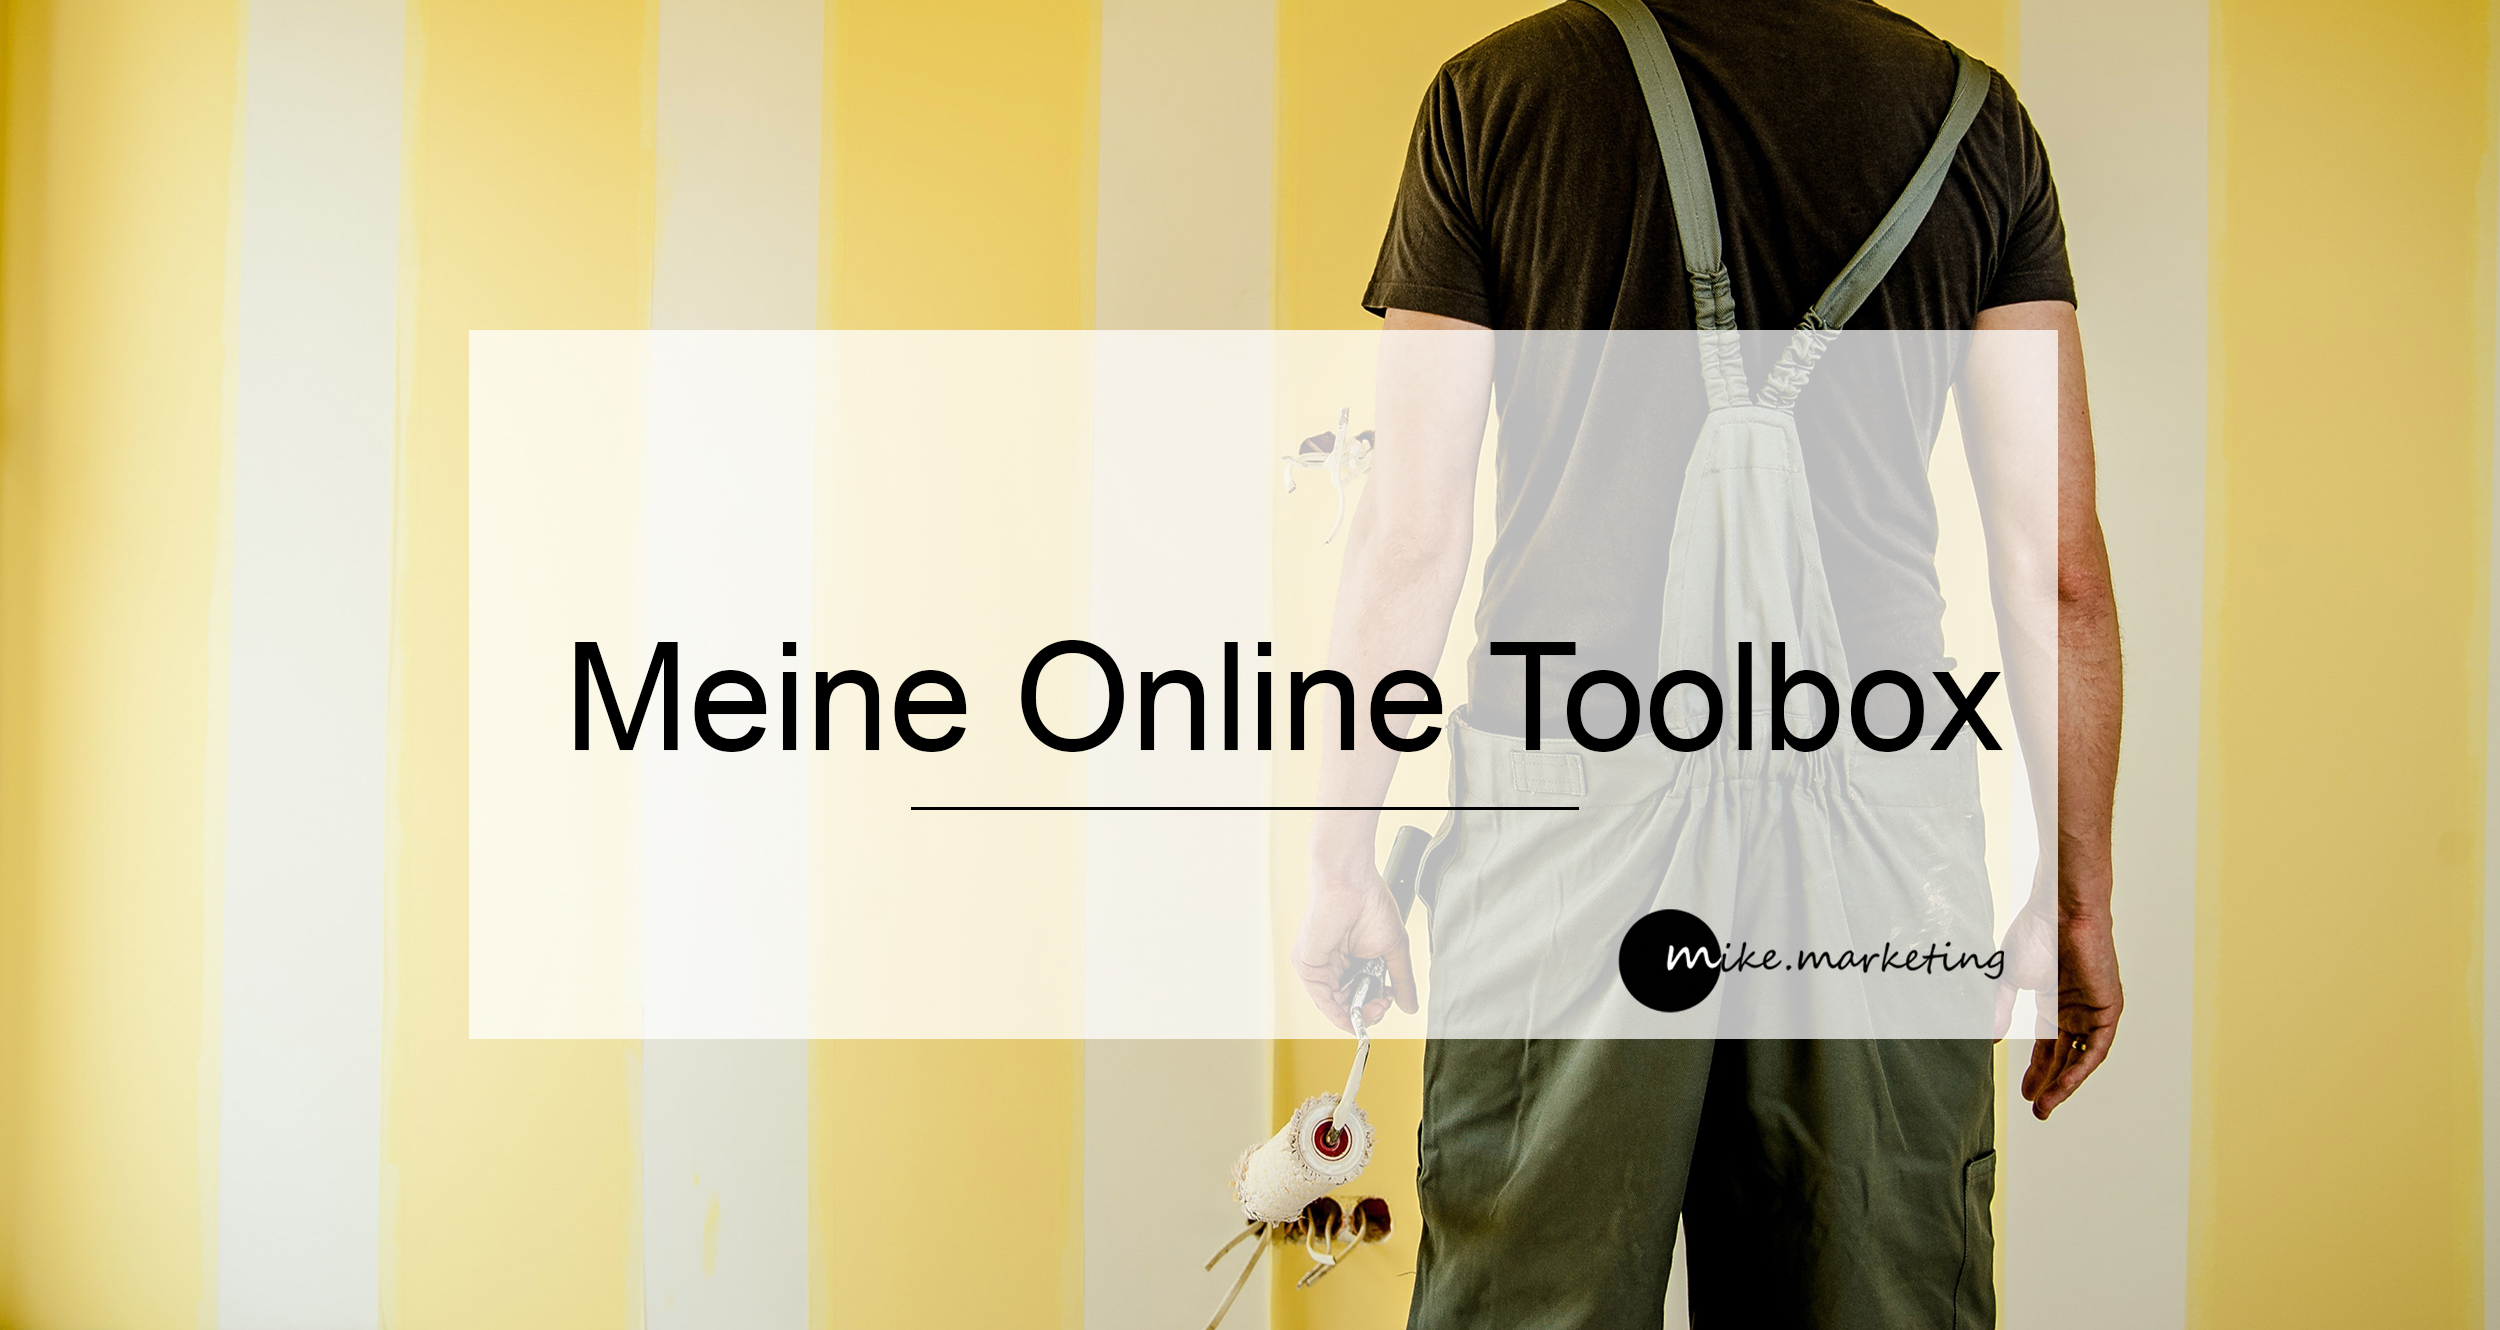 OnlineToolbox mikemarketing Blogparade